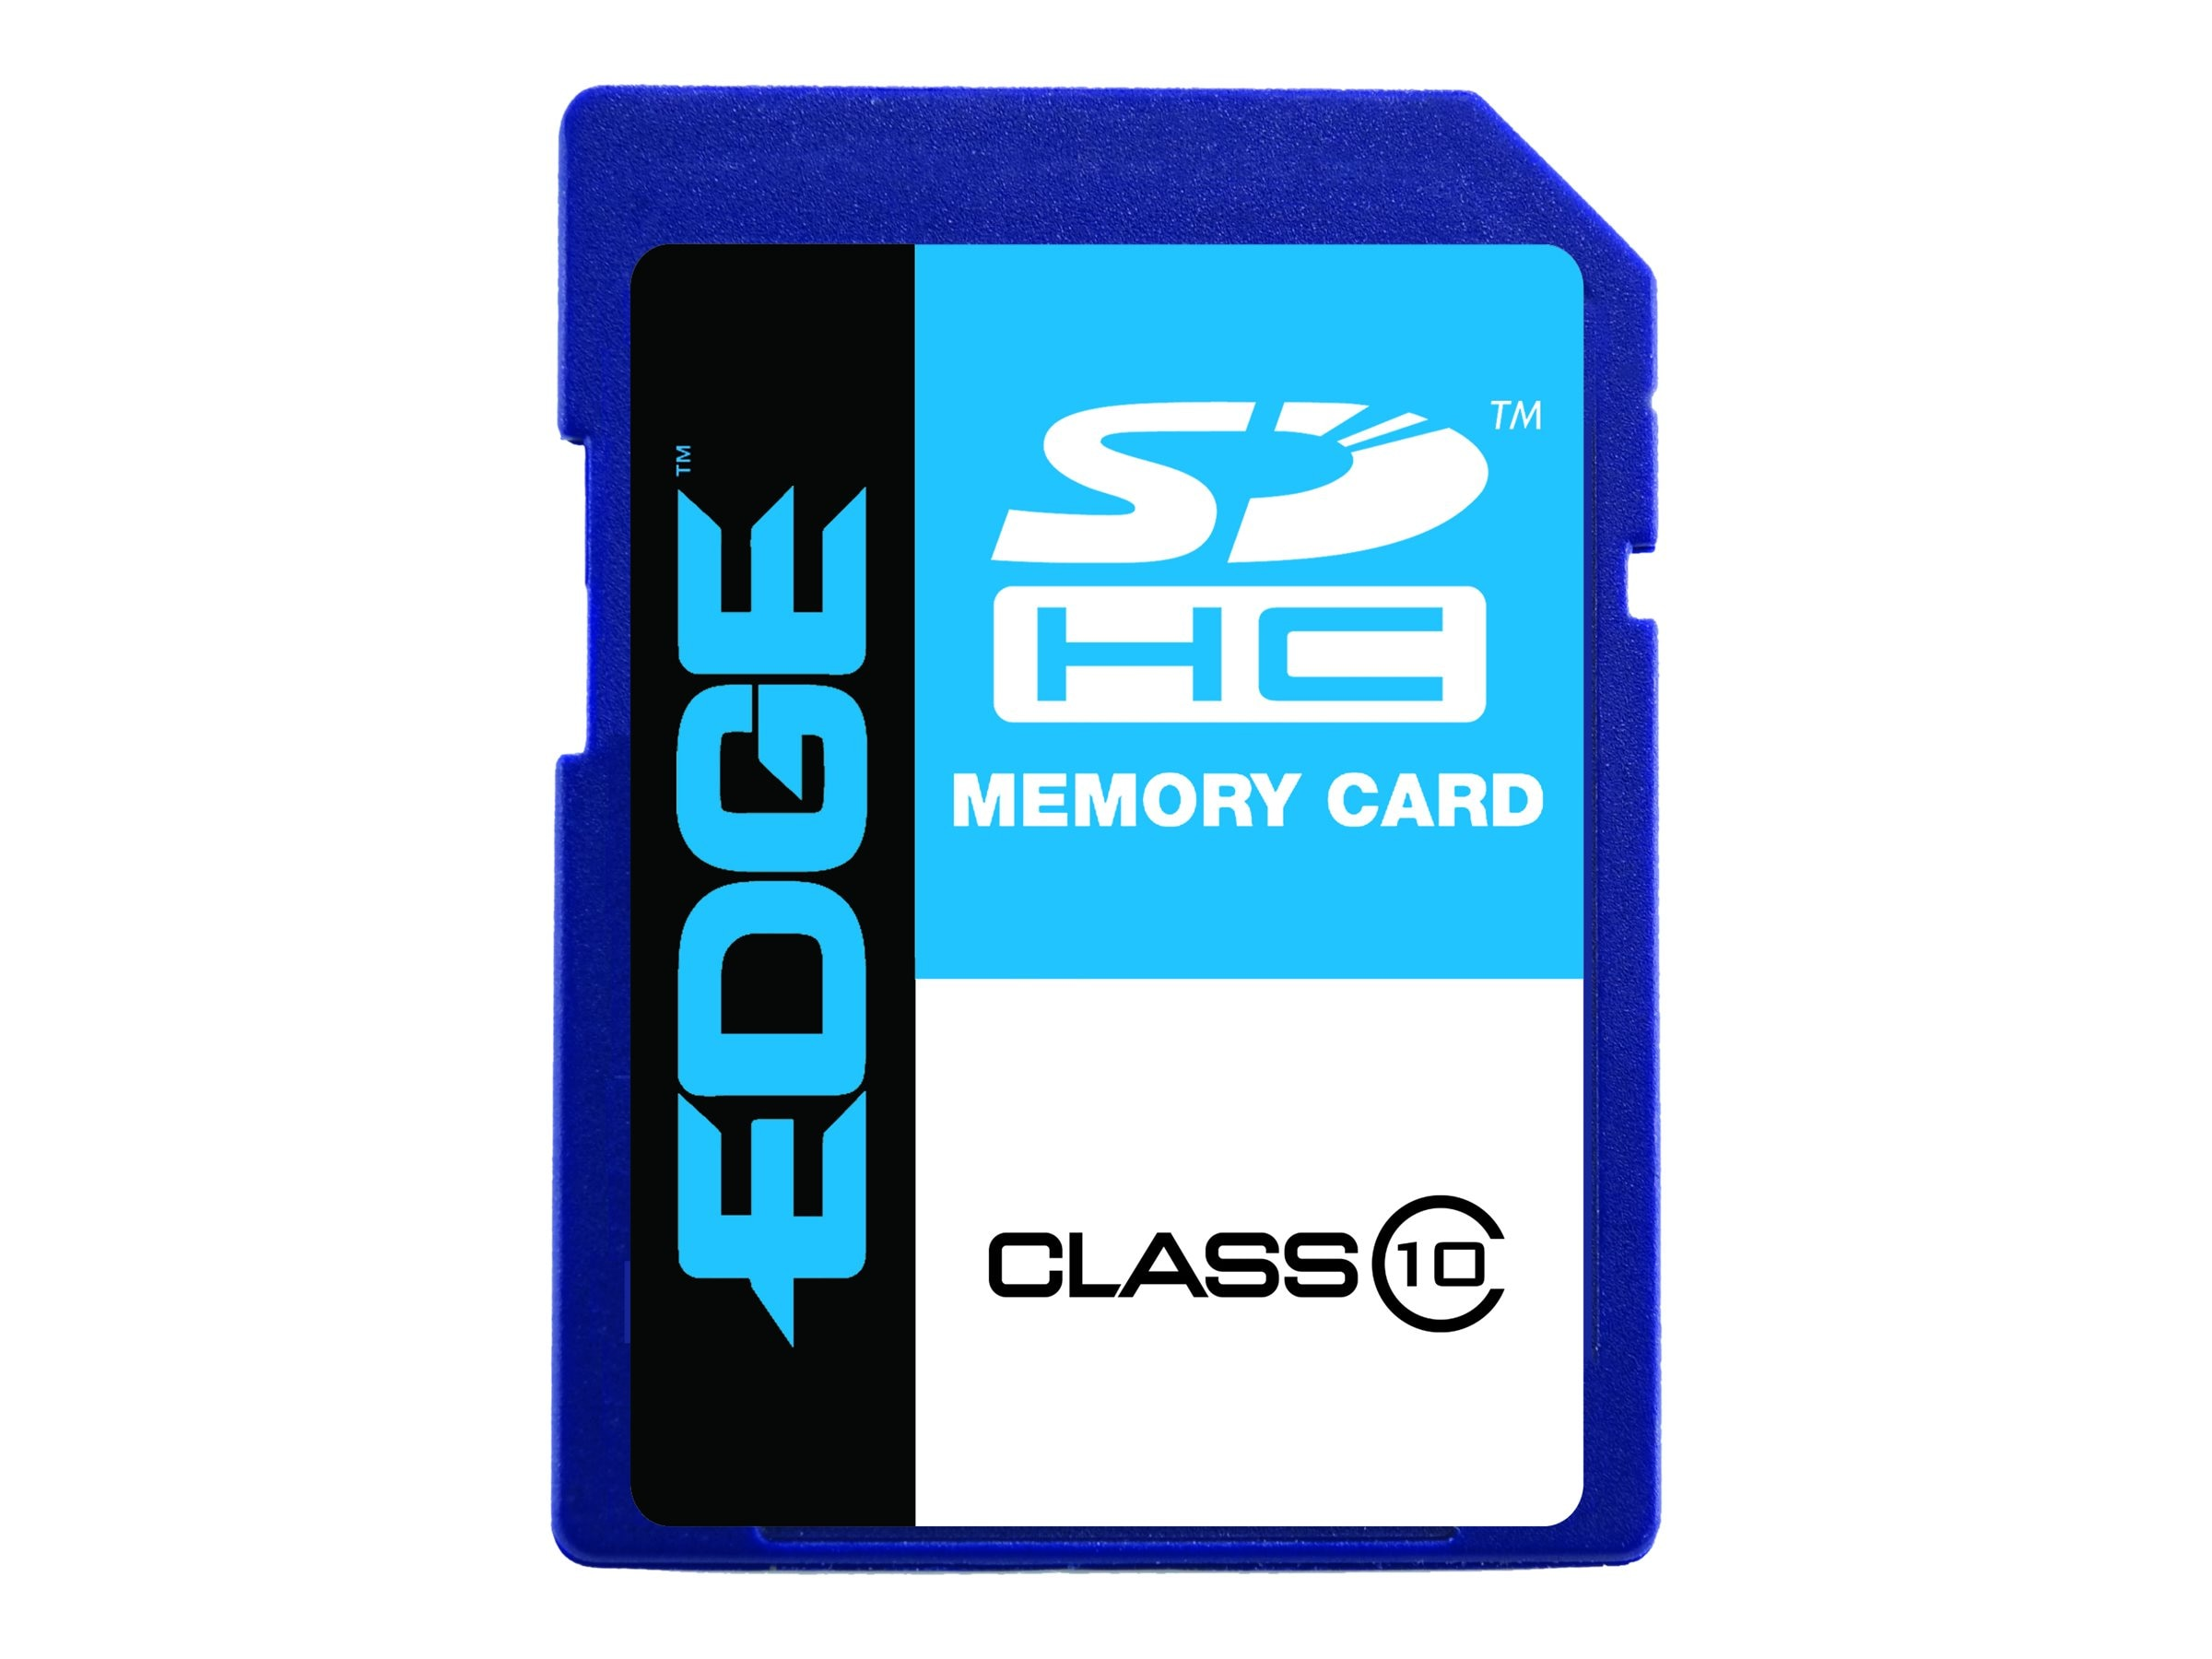 Edge 8GB ProShot SDHC Flash Memory Card, Class 10